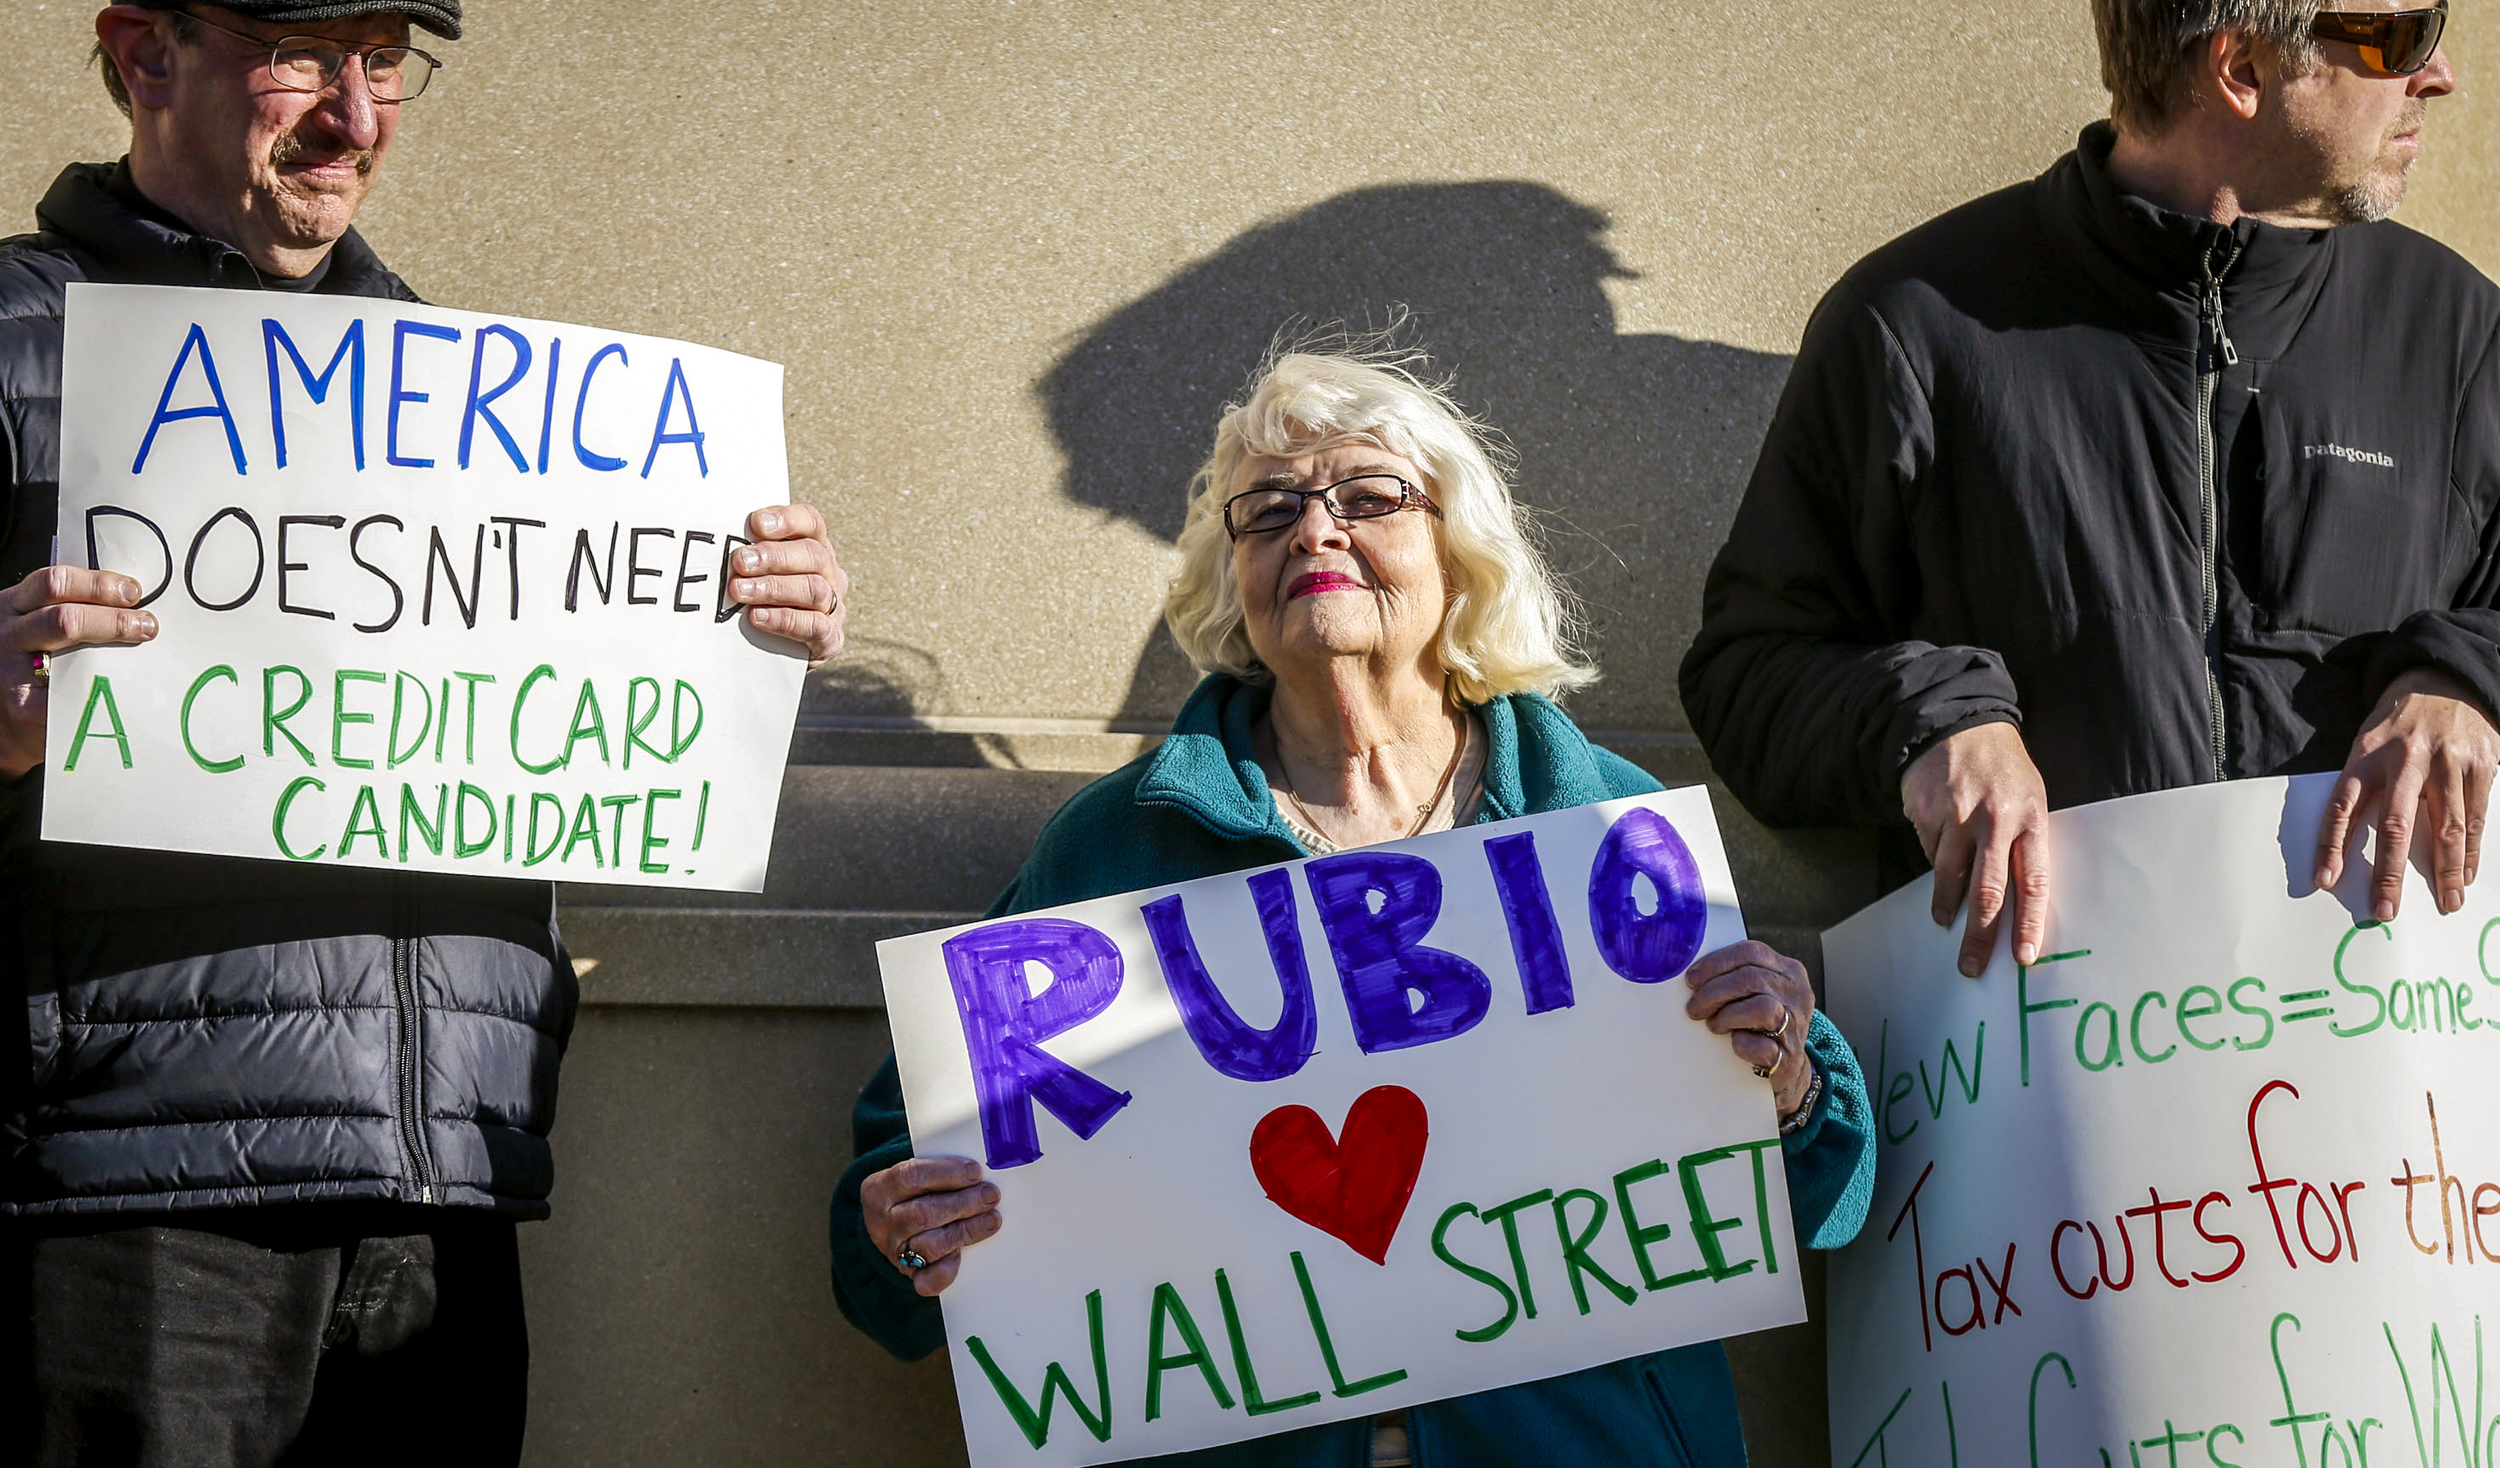 Mary Larew of Iowa City, Iowa, holds a sign in protest of Sen. Marco Rubio outside the Mediacom Outdoor Club in Kinnick Stadium in Iowa City, Iowa, Thursday, Dec. 10, 2015. The republican presidential hopeful made a stop in Iowa City for a meet and greet after visiting Des Moines and Ames earlier in the day.